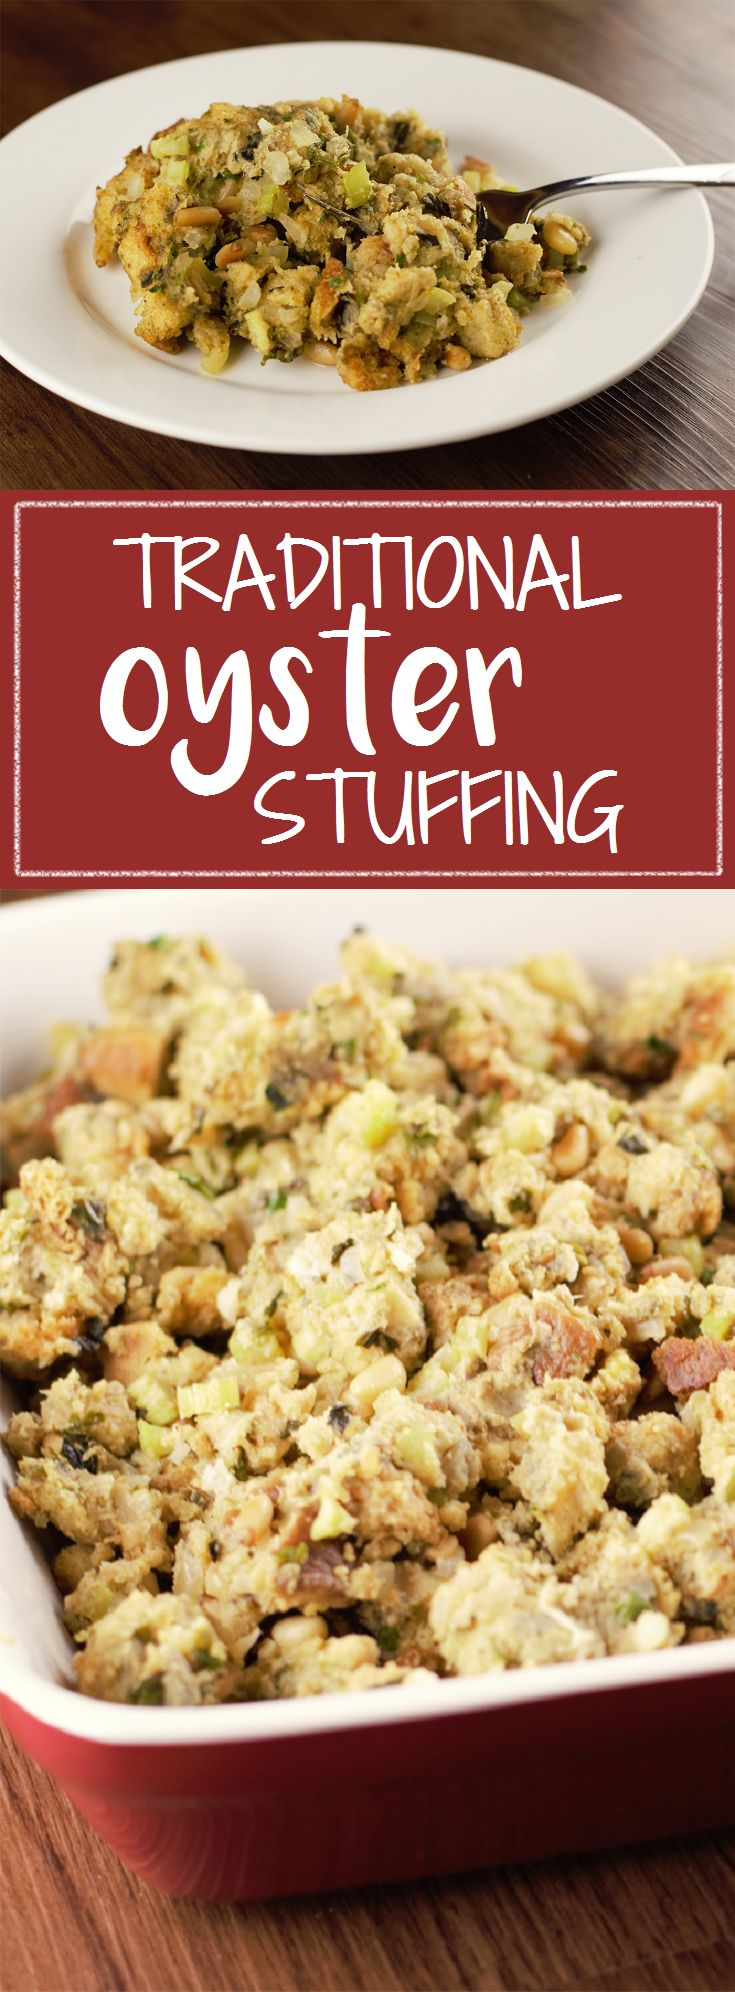 Best 20 oysters ideas on pinterest oyster recipes for Thanksgiving fish recipes